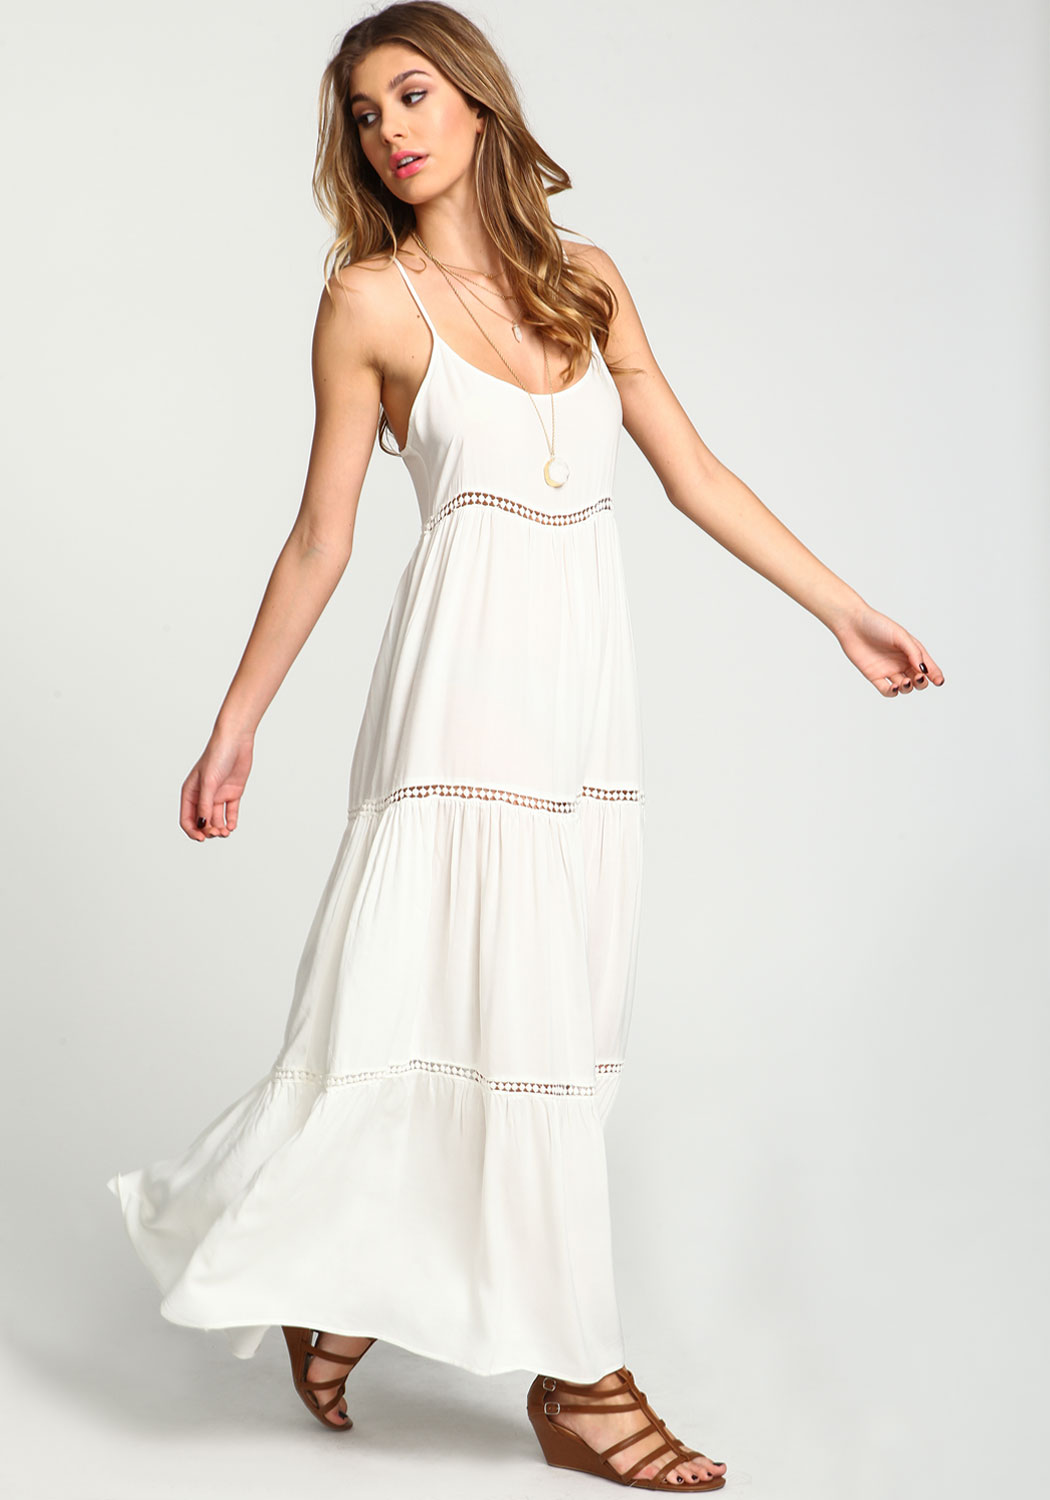 A flowing white maxi dress designed for movement and flair.